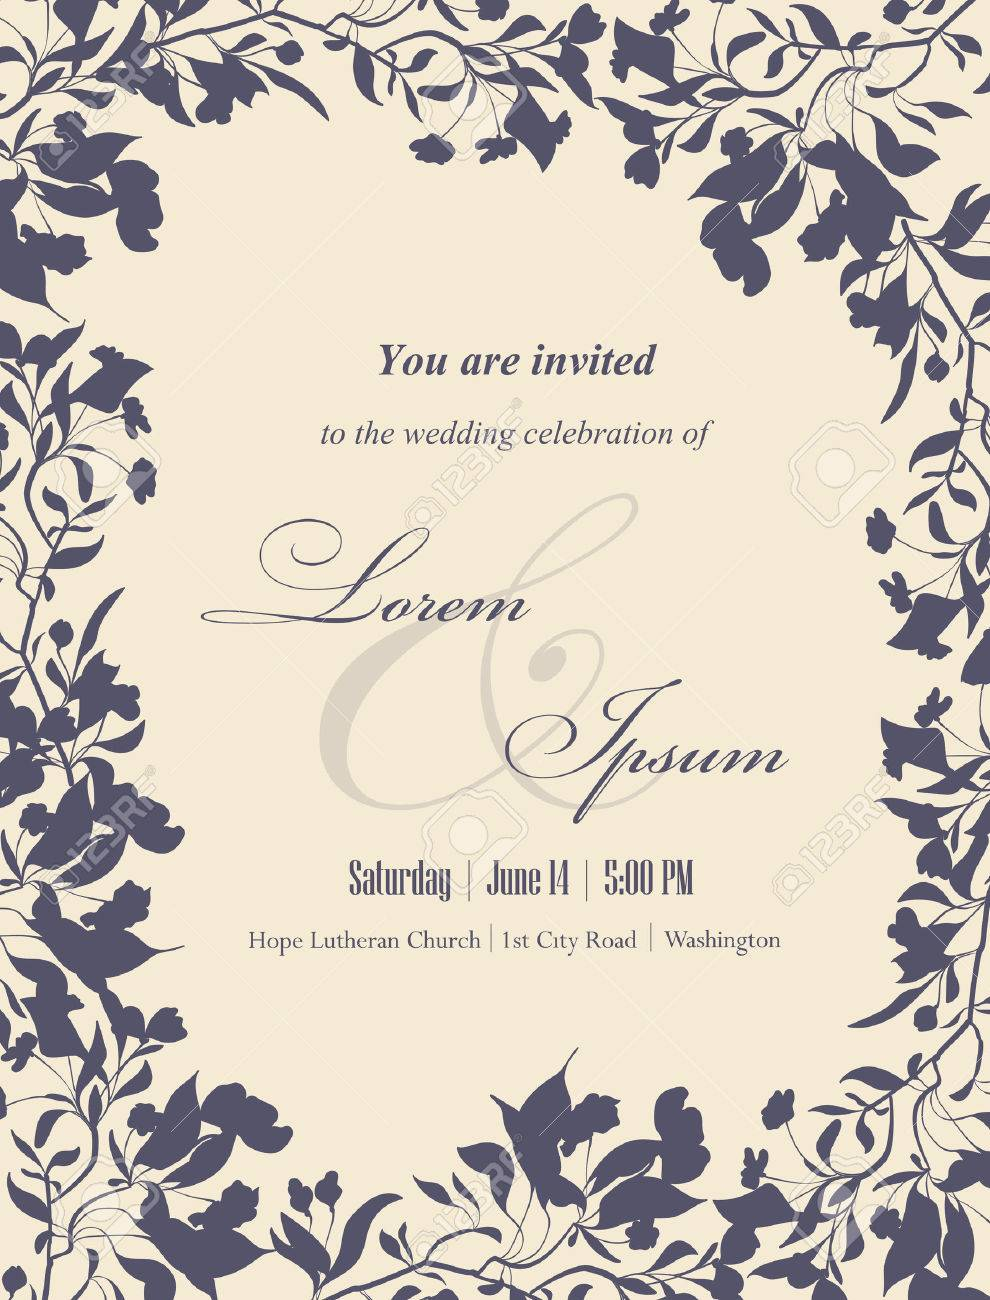 Wedding invitation cards with floral elements. Floral frame and place for your text. Use for invitations, announcement cards. Vector illustration. - 35045255